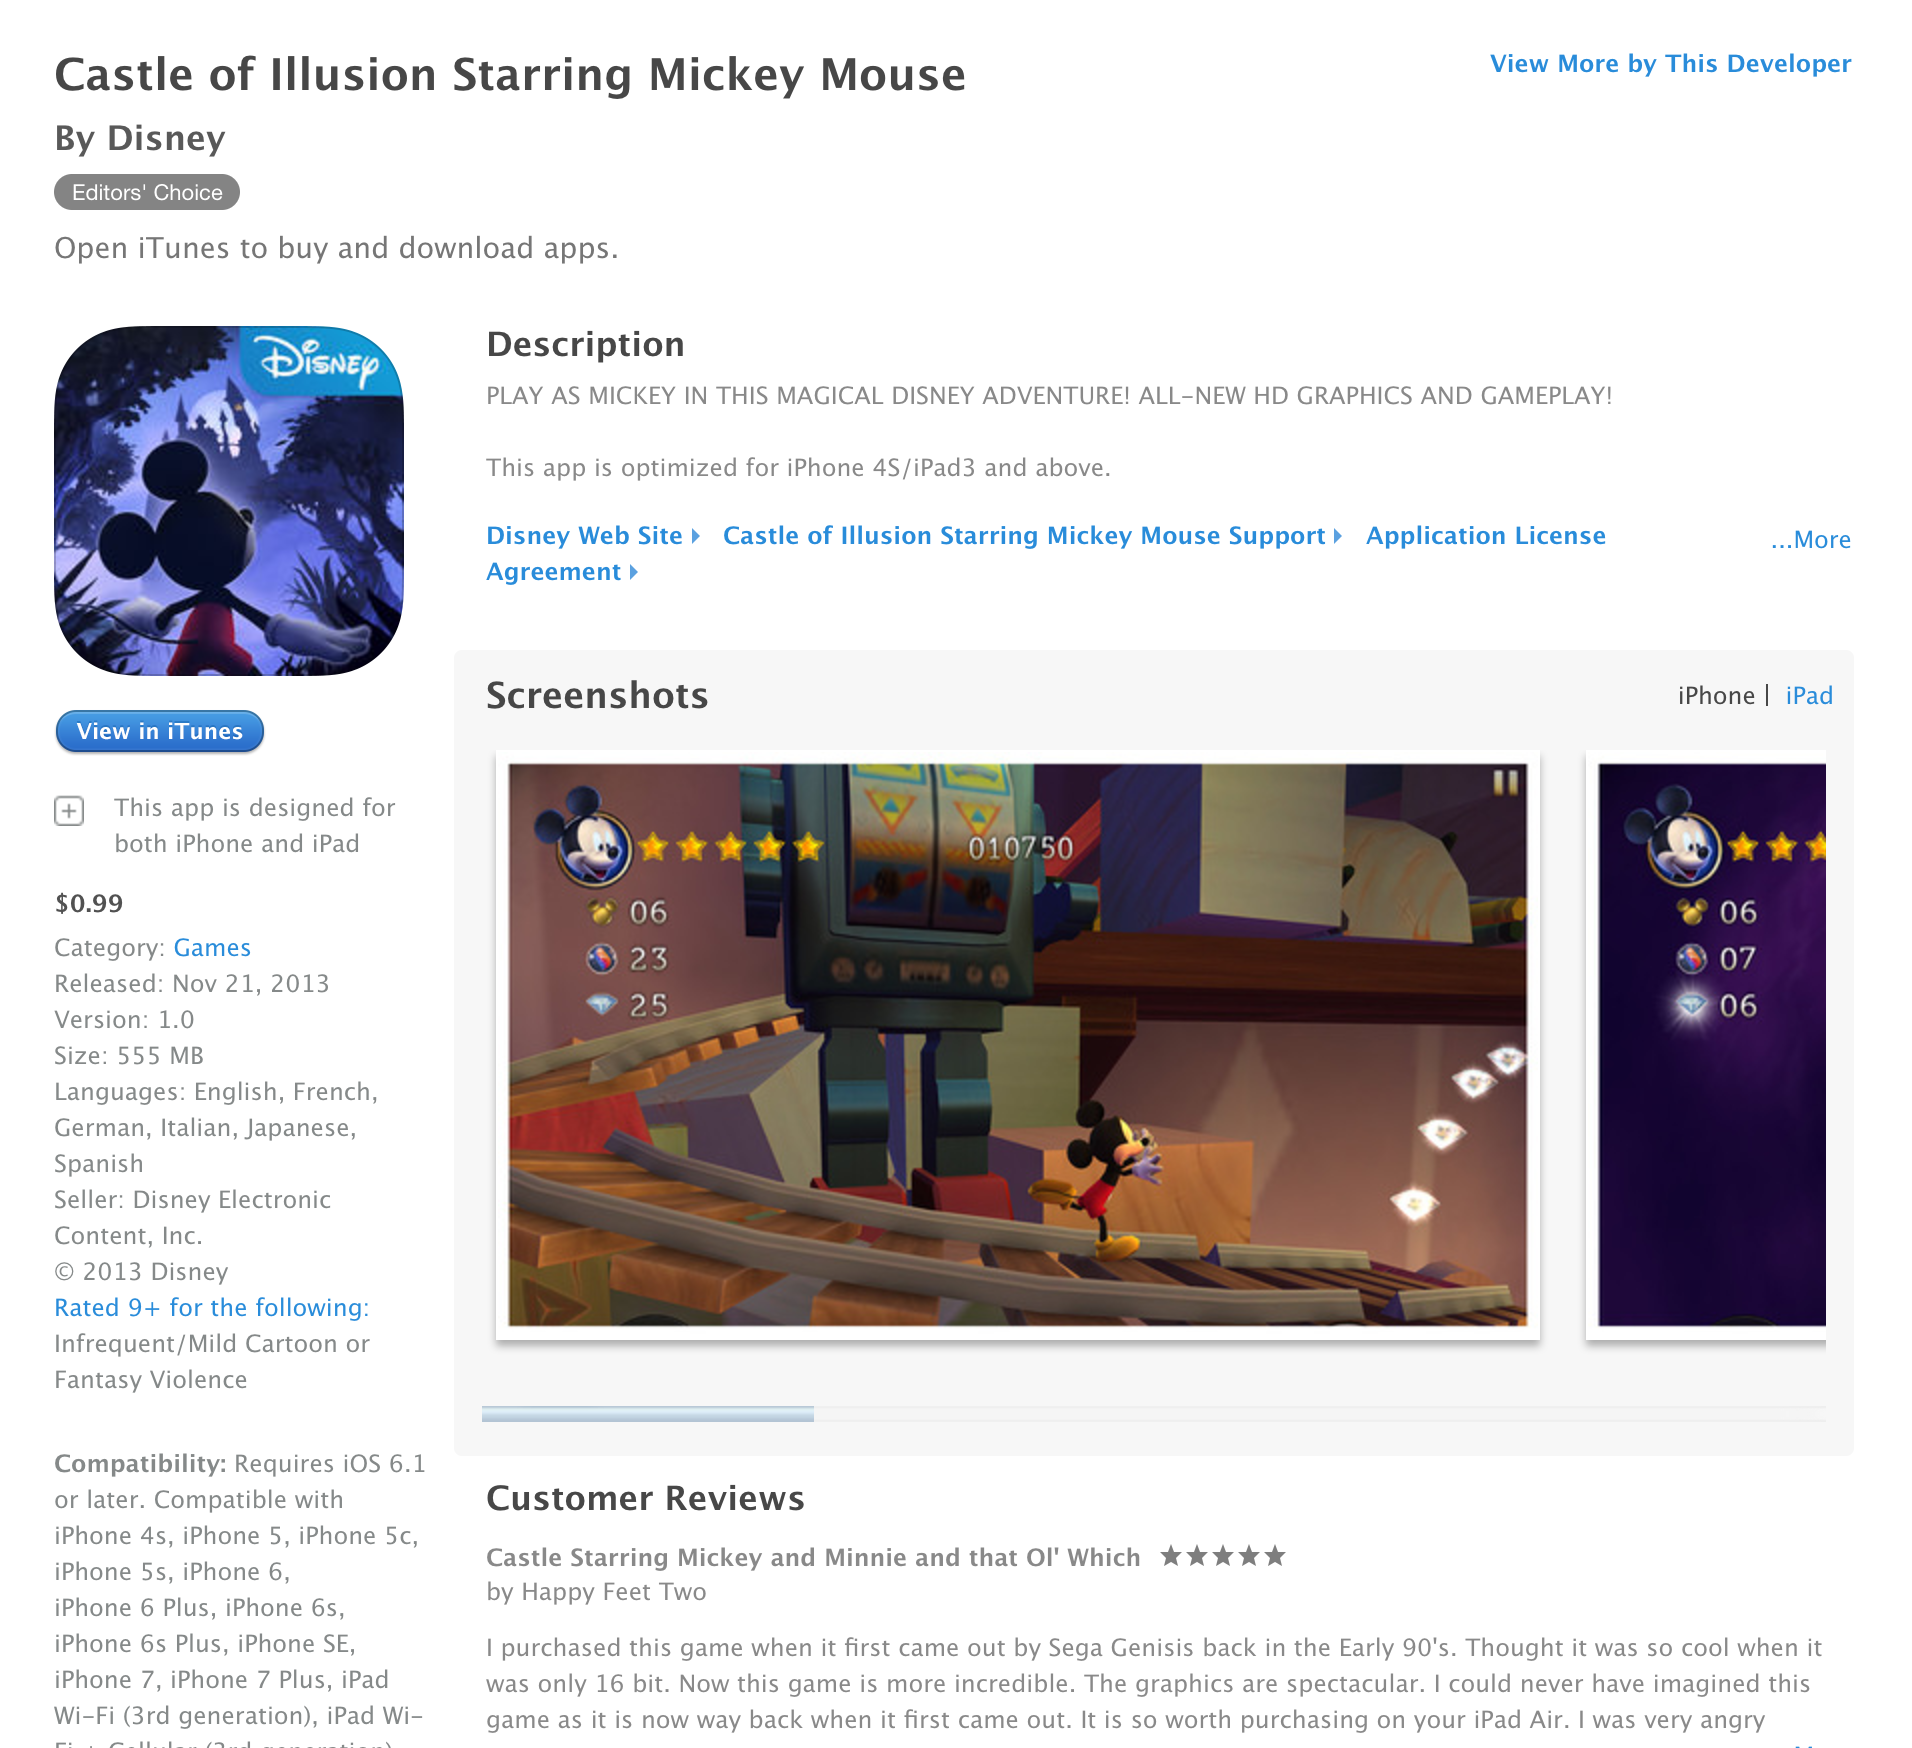 castle-of-illusion-starring-mickey-mouse-3